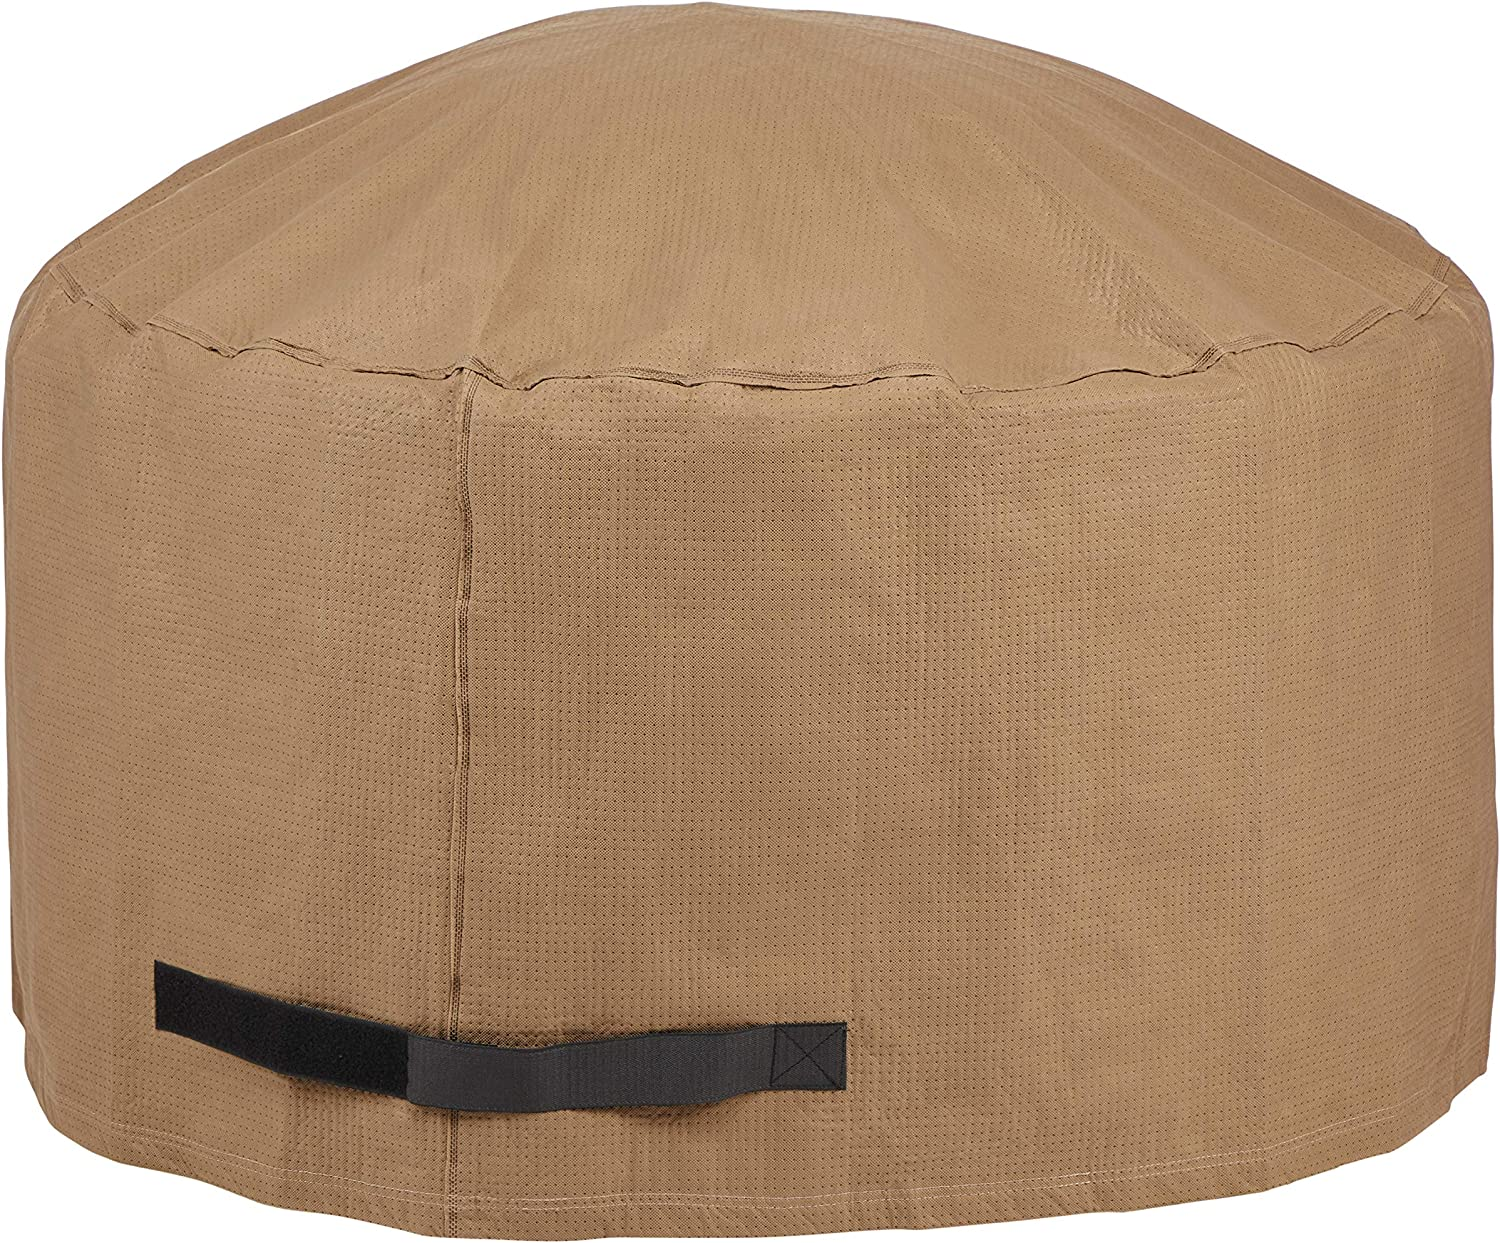 Duck Covers Essential Water-Resistant 42 Inch Round Fire Pit Cover